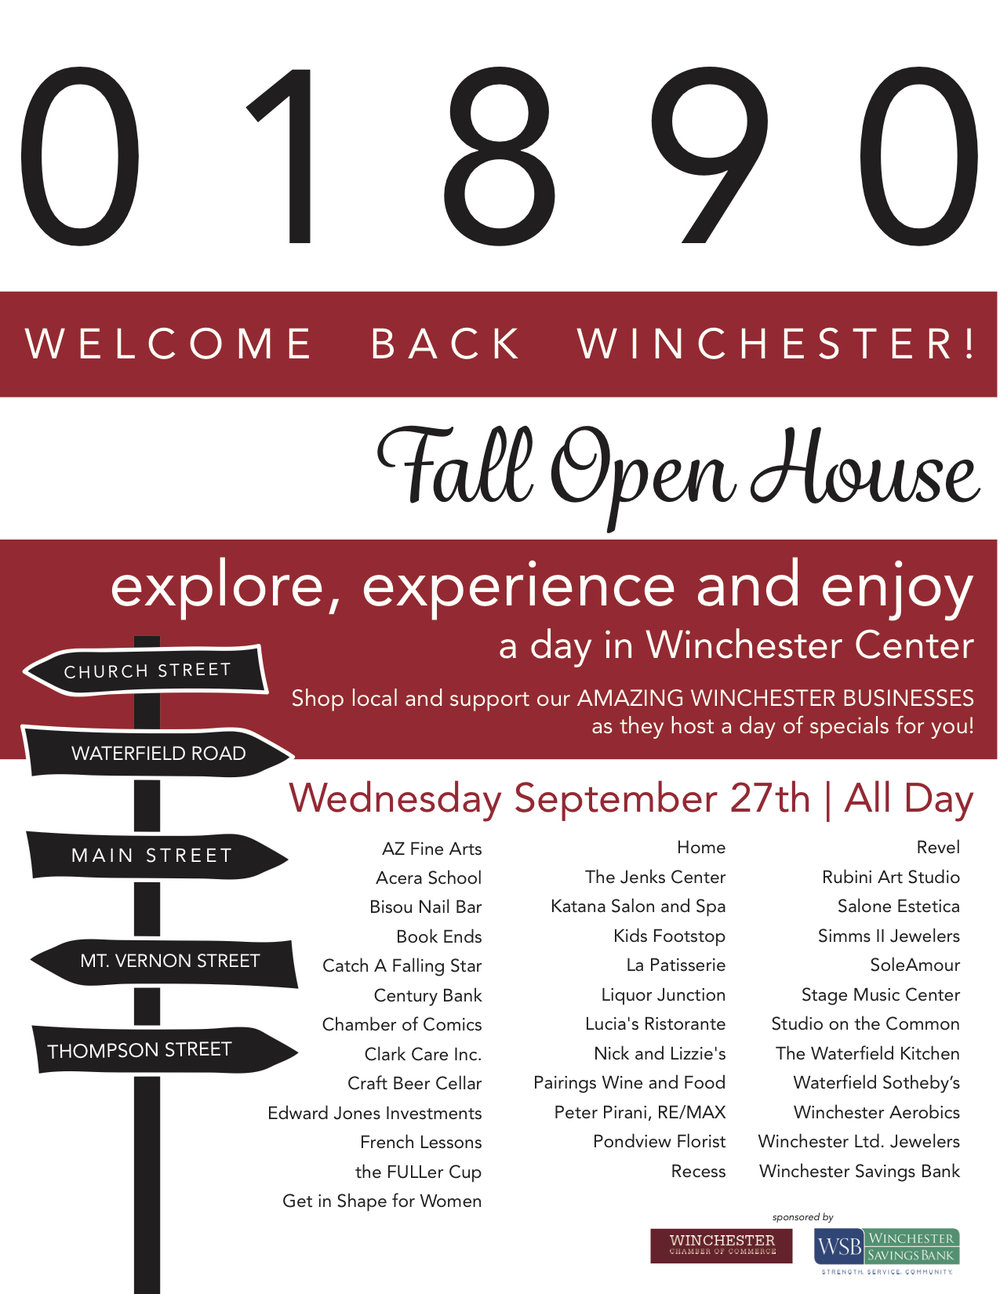 Winchester-MA-Music-Lessons-Fall-Open-House Flyer.jpg